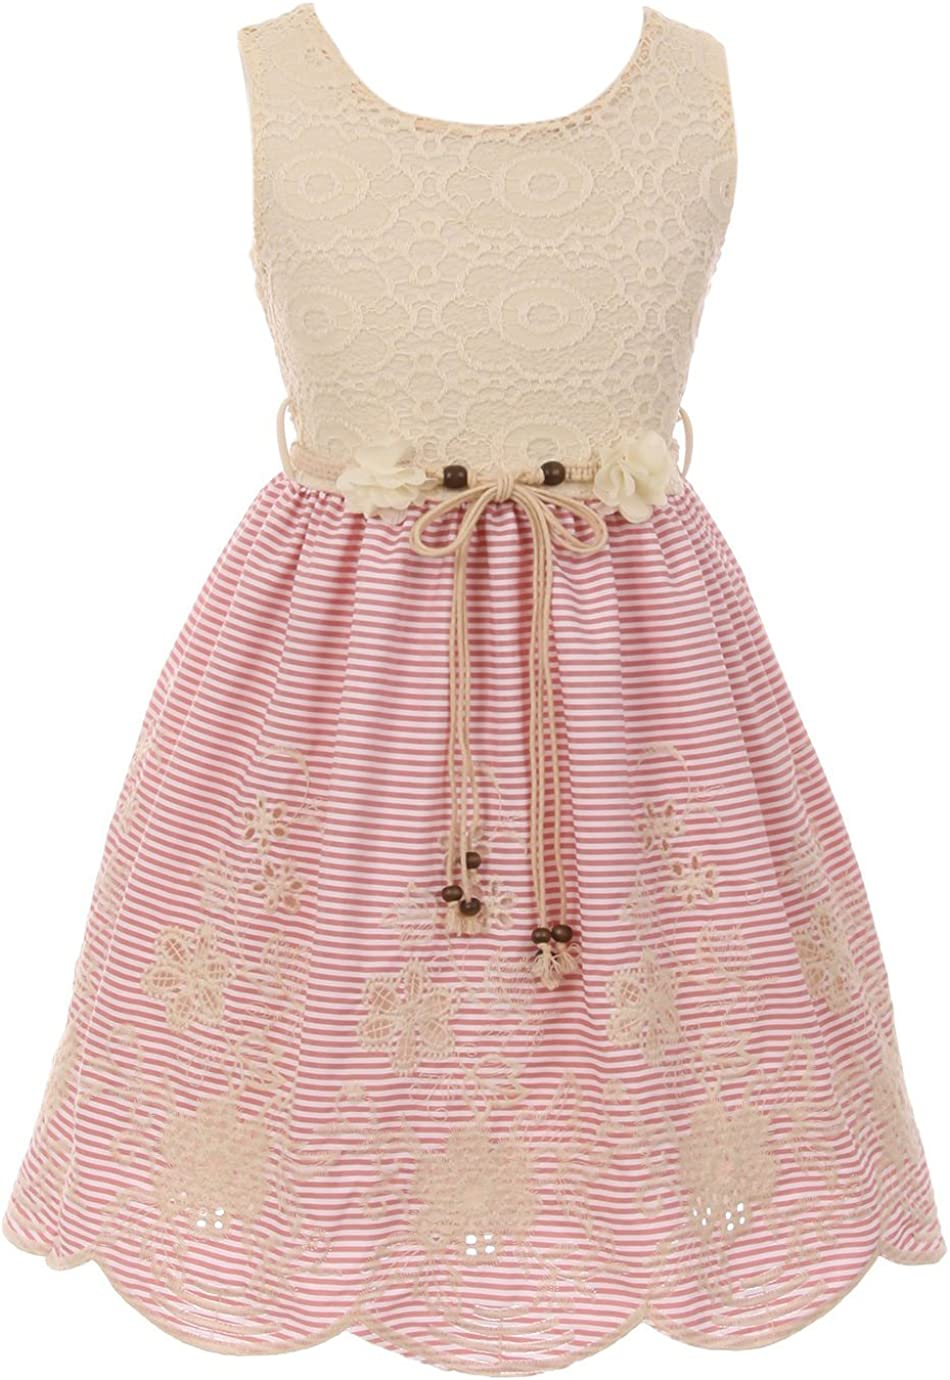 Little Girls Floral Lace Embroider Stripes Tea Party Birthday Flower Girl Dress